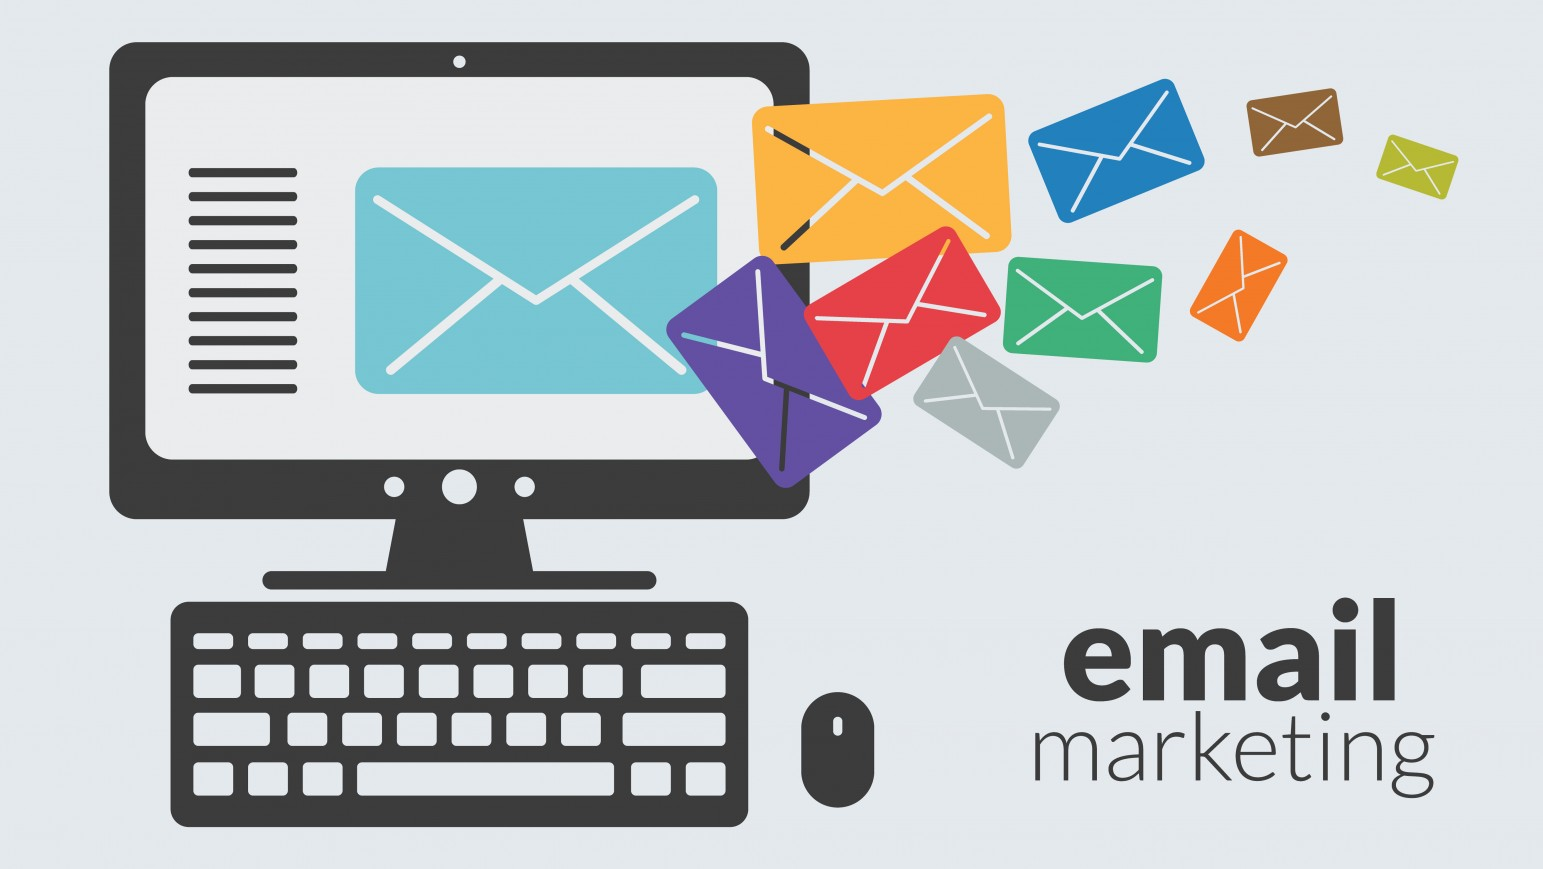 Email marketing - a great way to enhance customer engagement